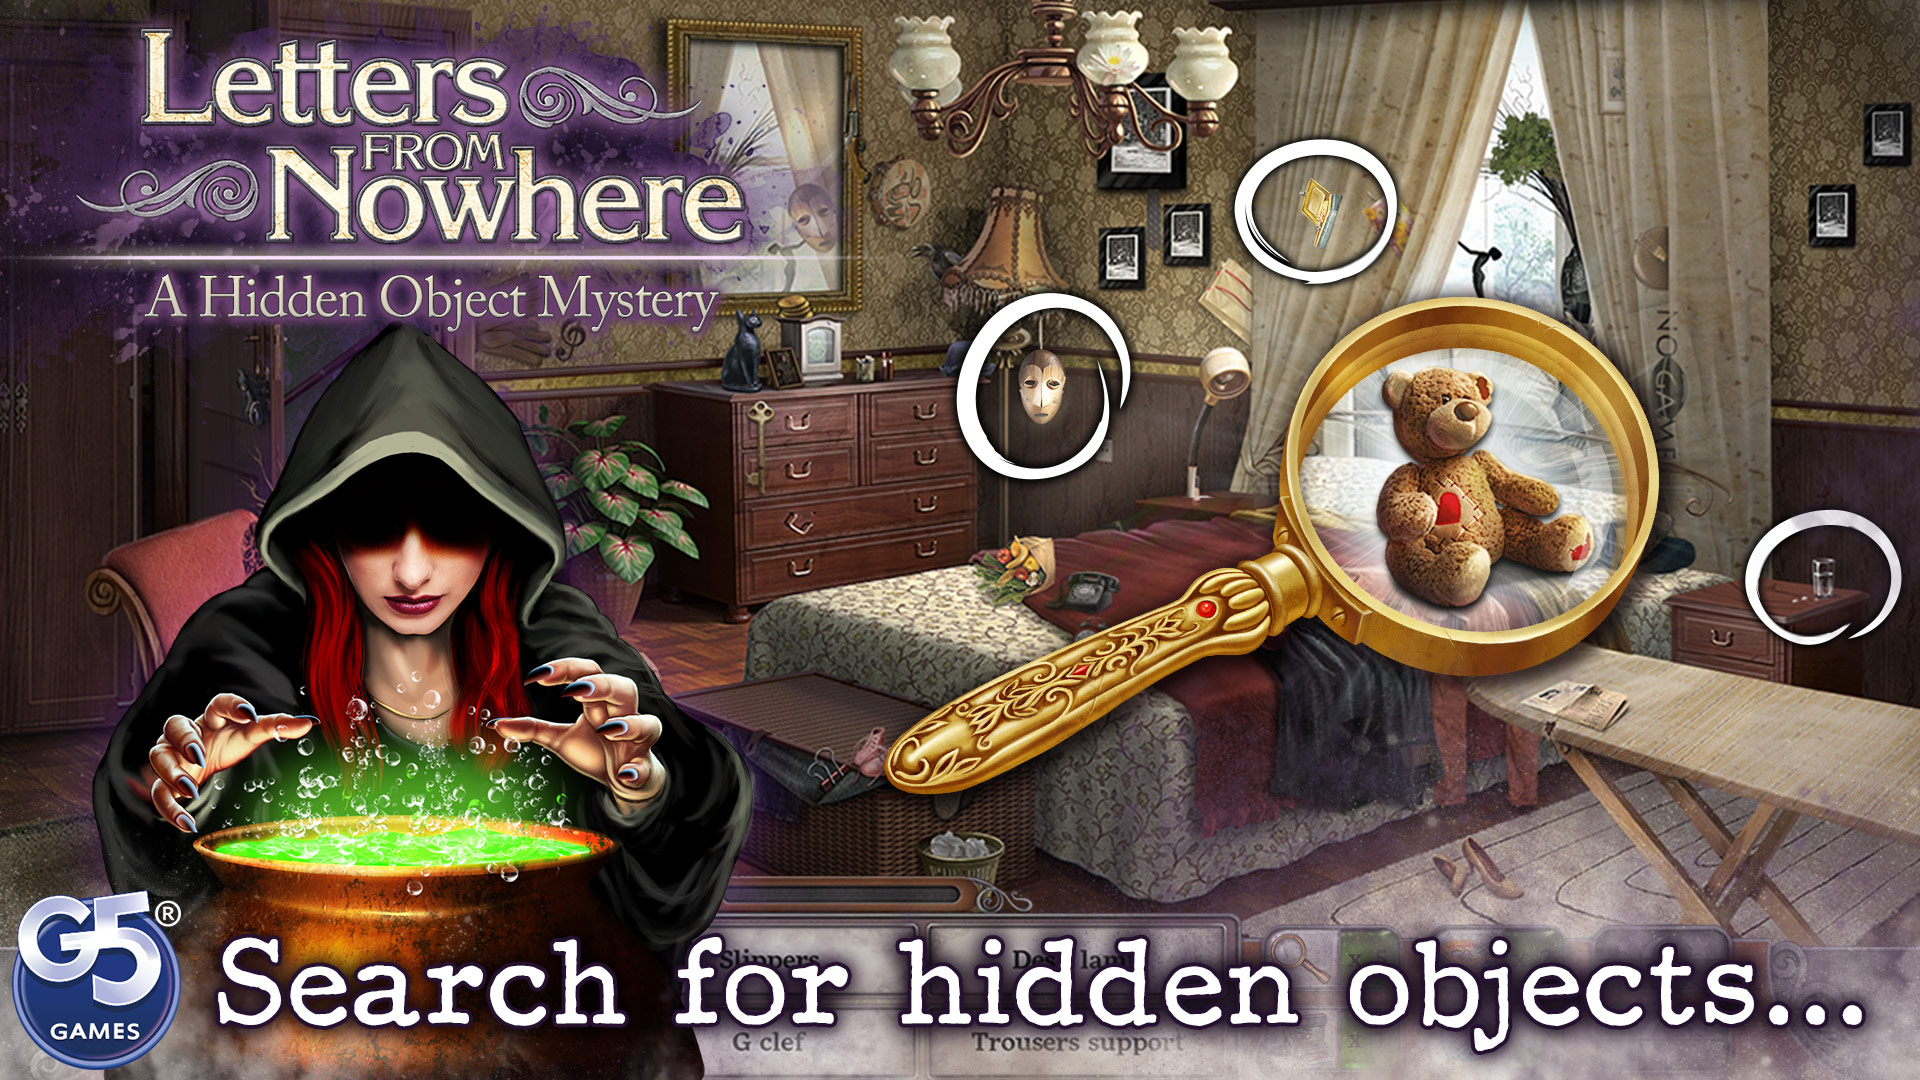 Letters From Nowhere: A Hidden Object Mystery